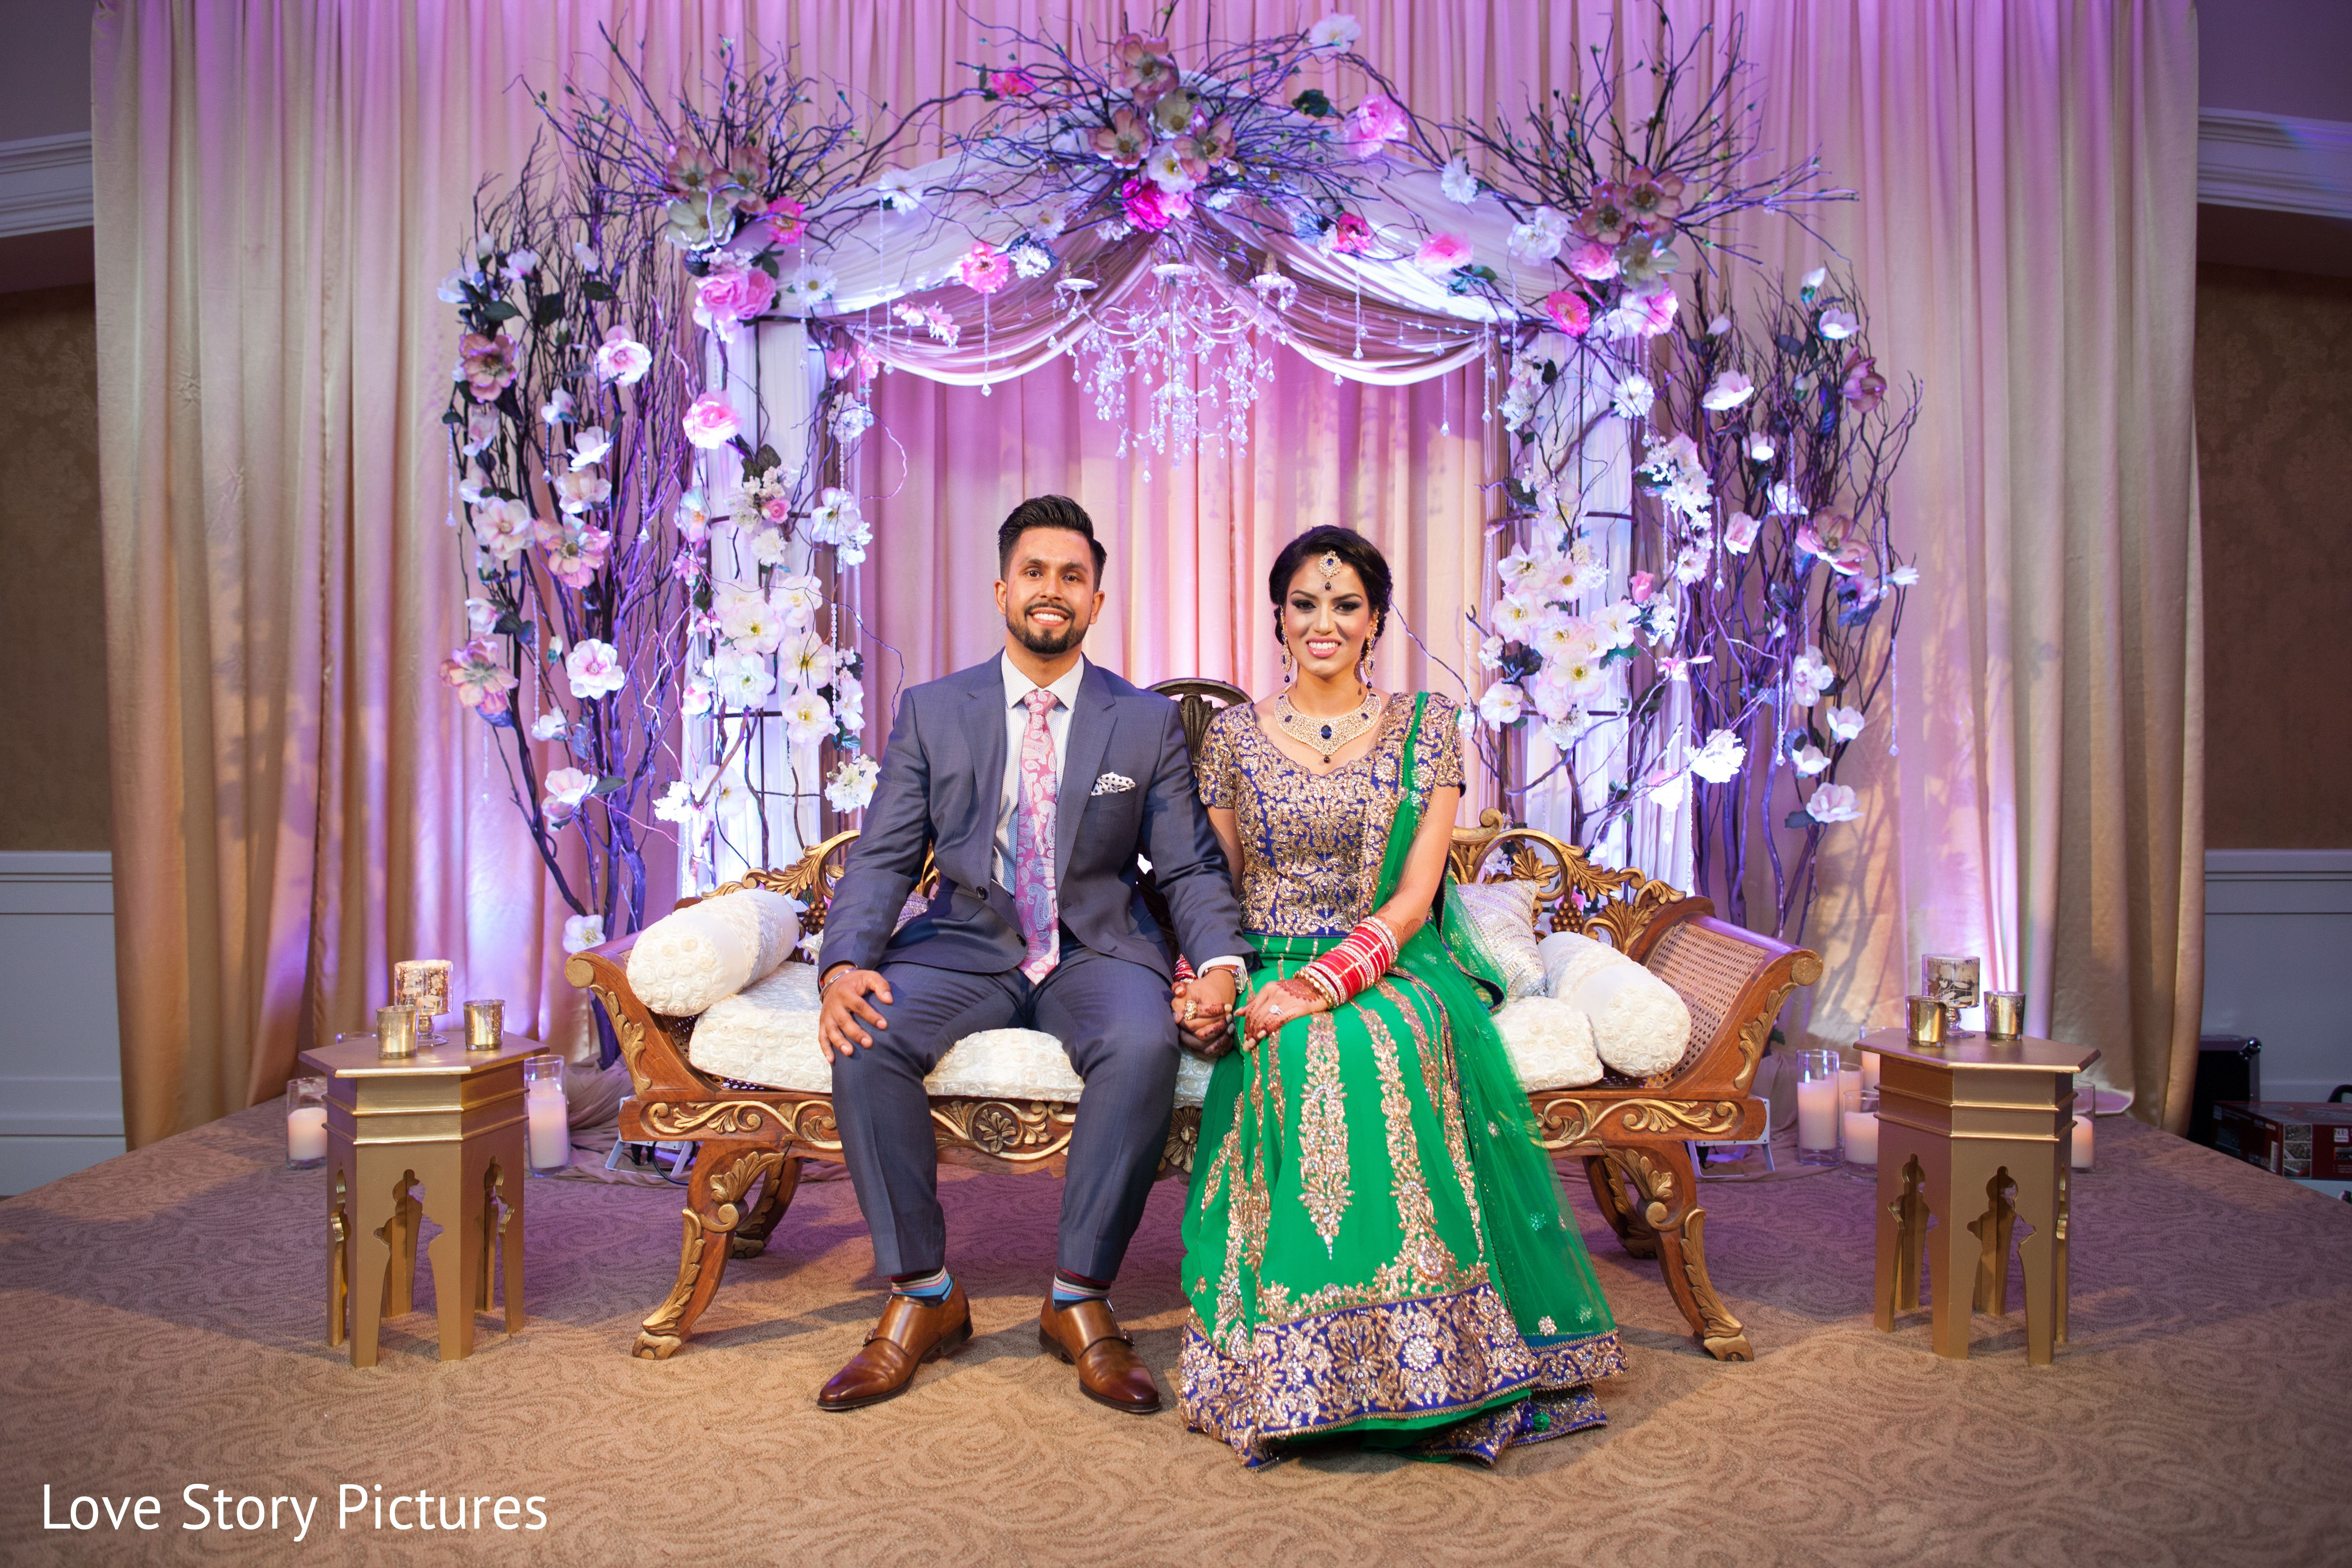 Uncategorized Wedding Reception Backdrop Decorations purple red lehenga with backdrop google search pakistani an indian bride and groom celebrate at their wedding reception